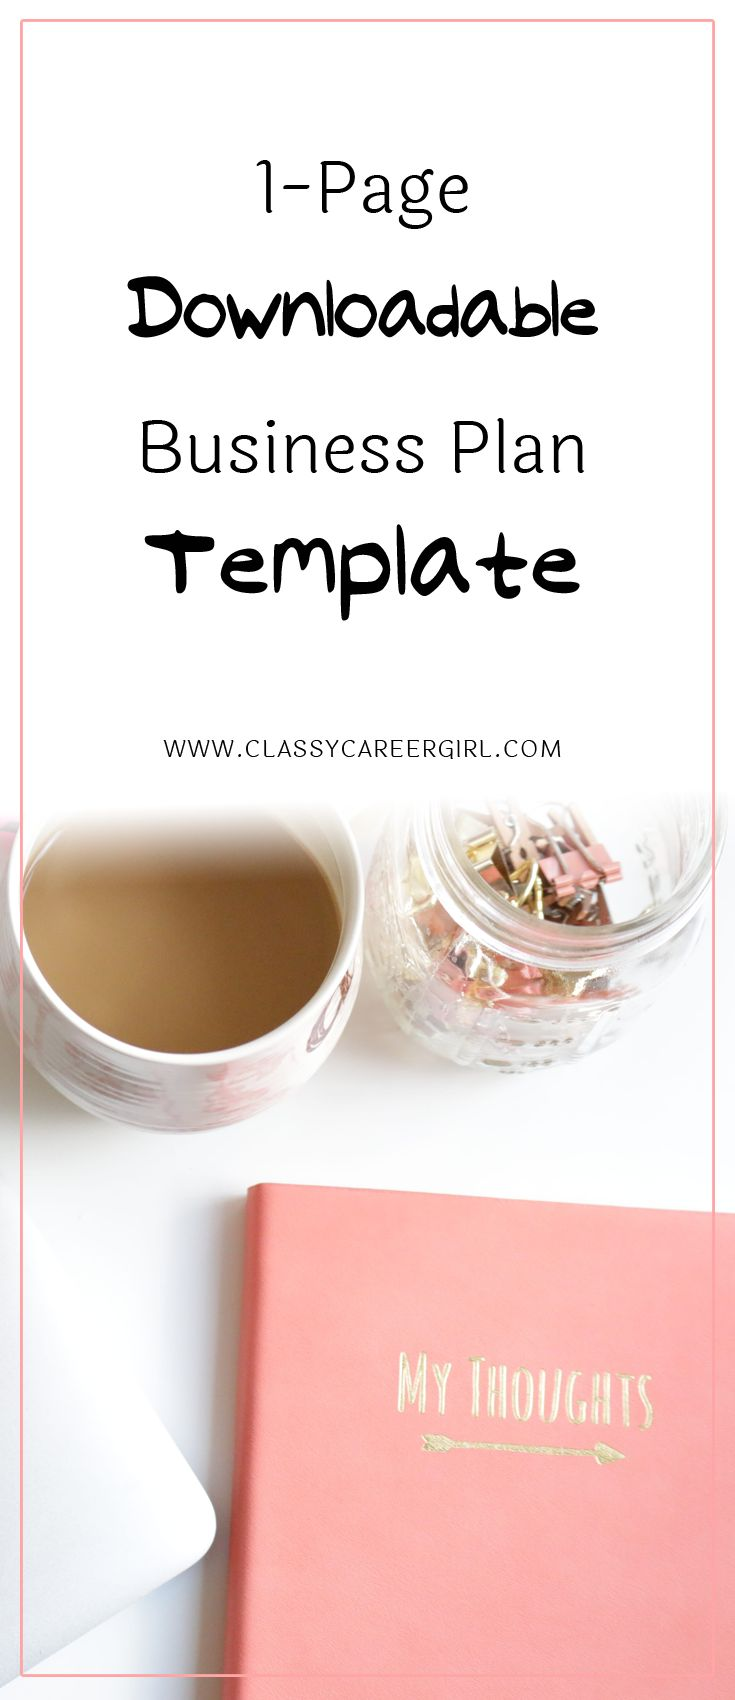 Growthink ultimate business plan template torrent download